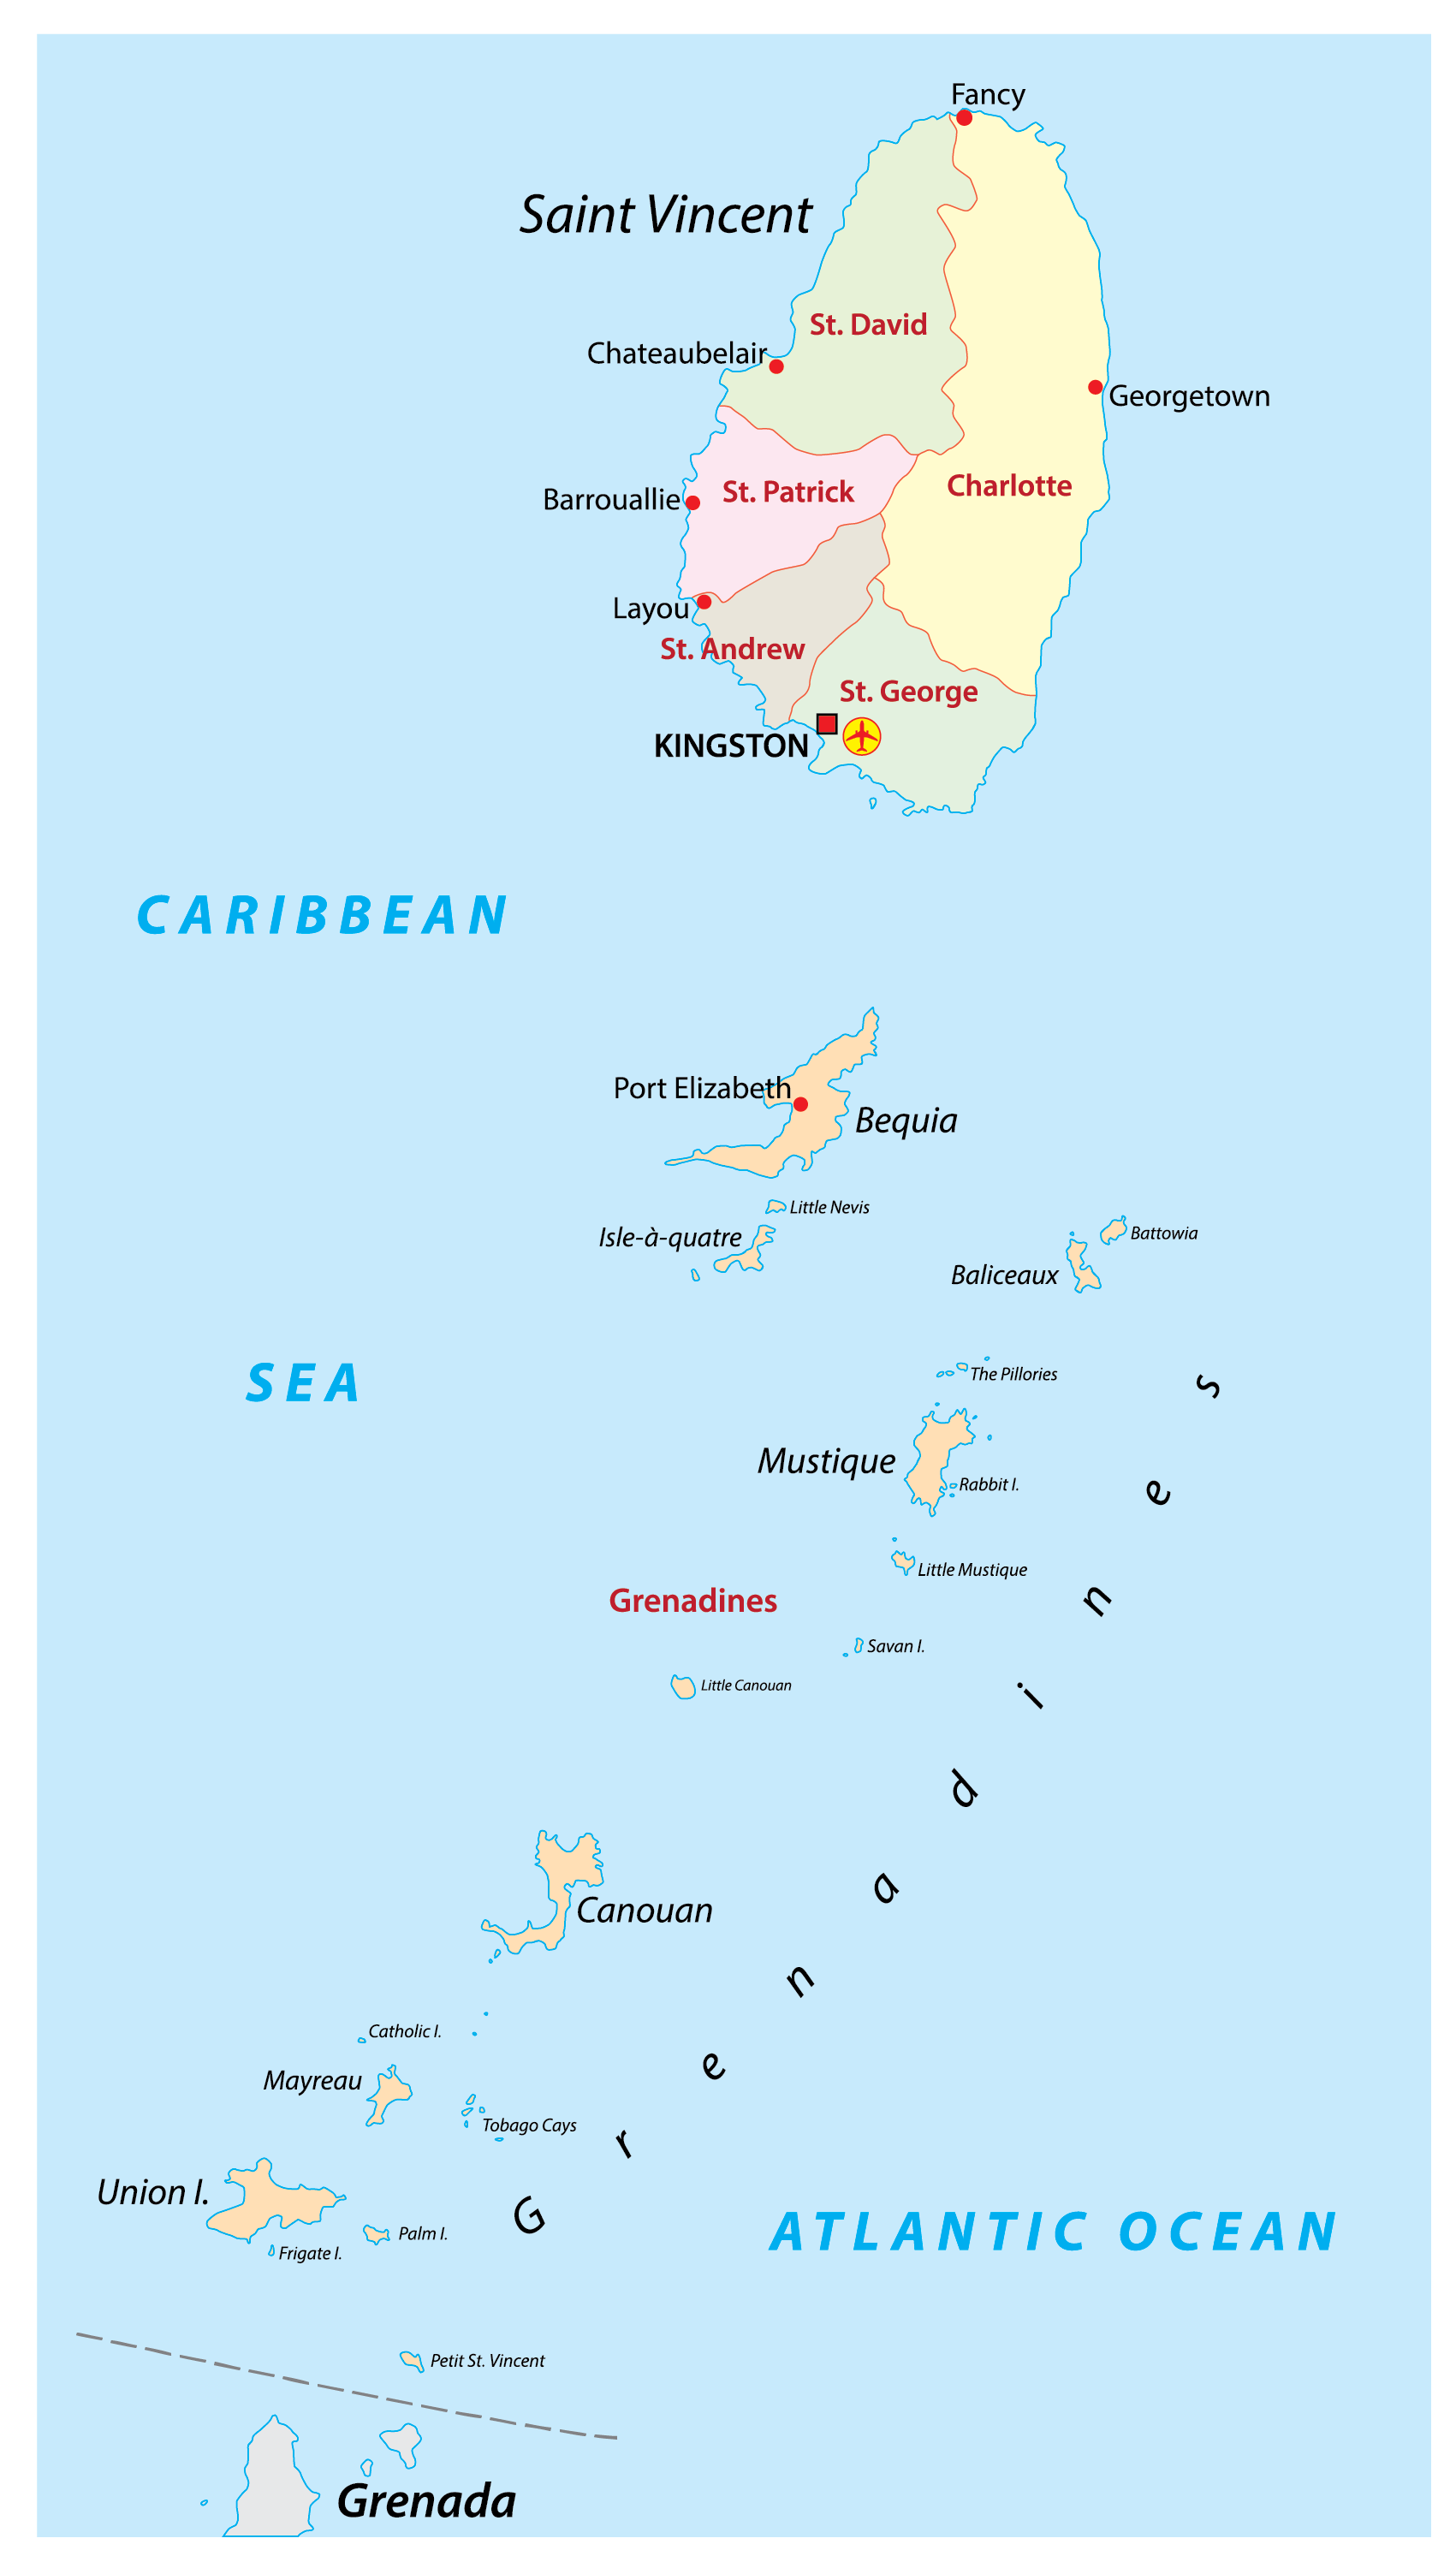 Political Map of St. Vincent and the Grenadines showing its 6 parishes and the capital city of Kingstown.